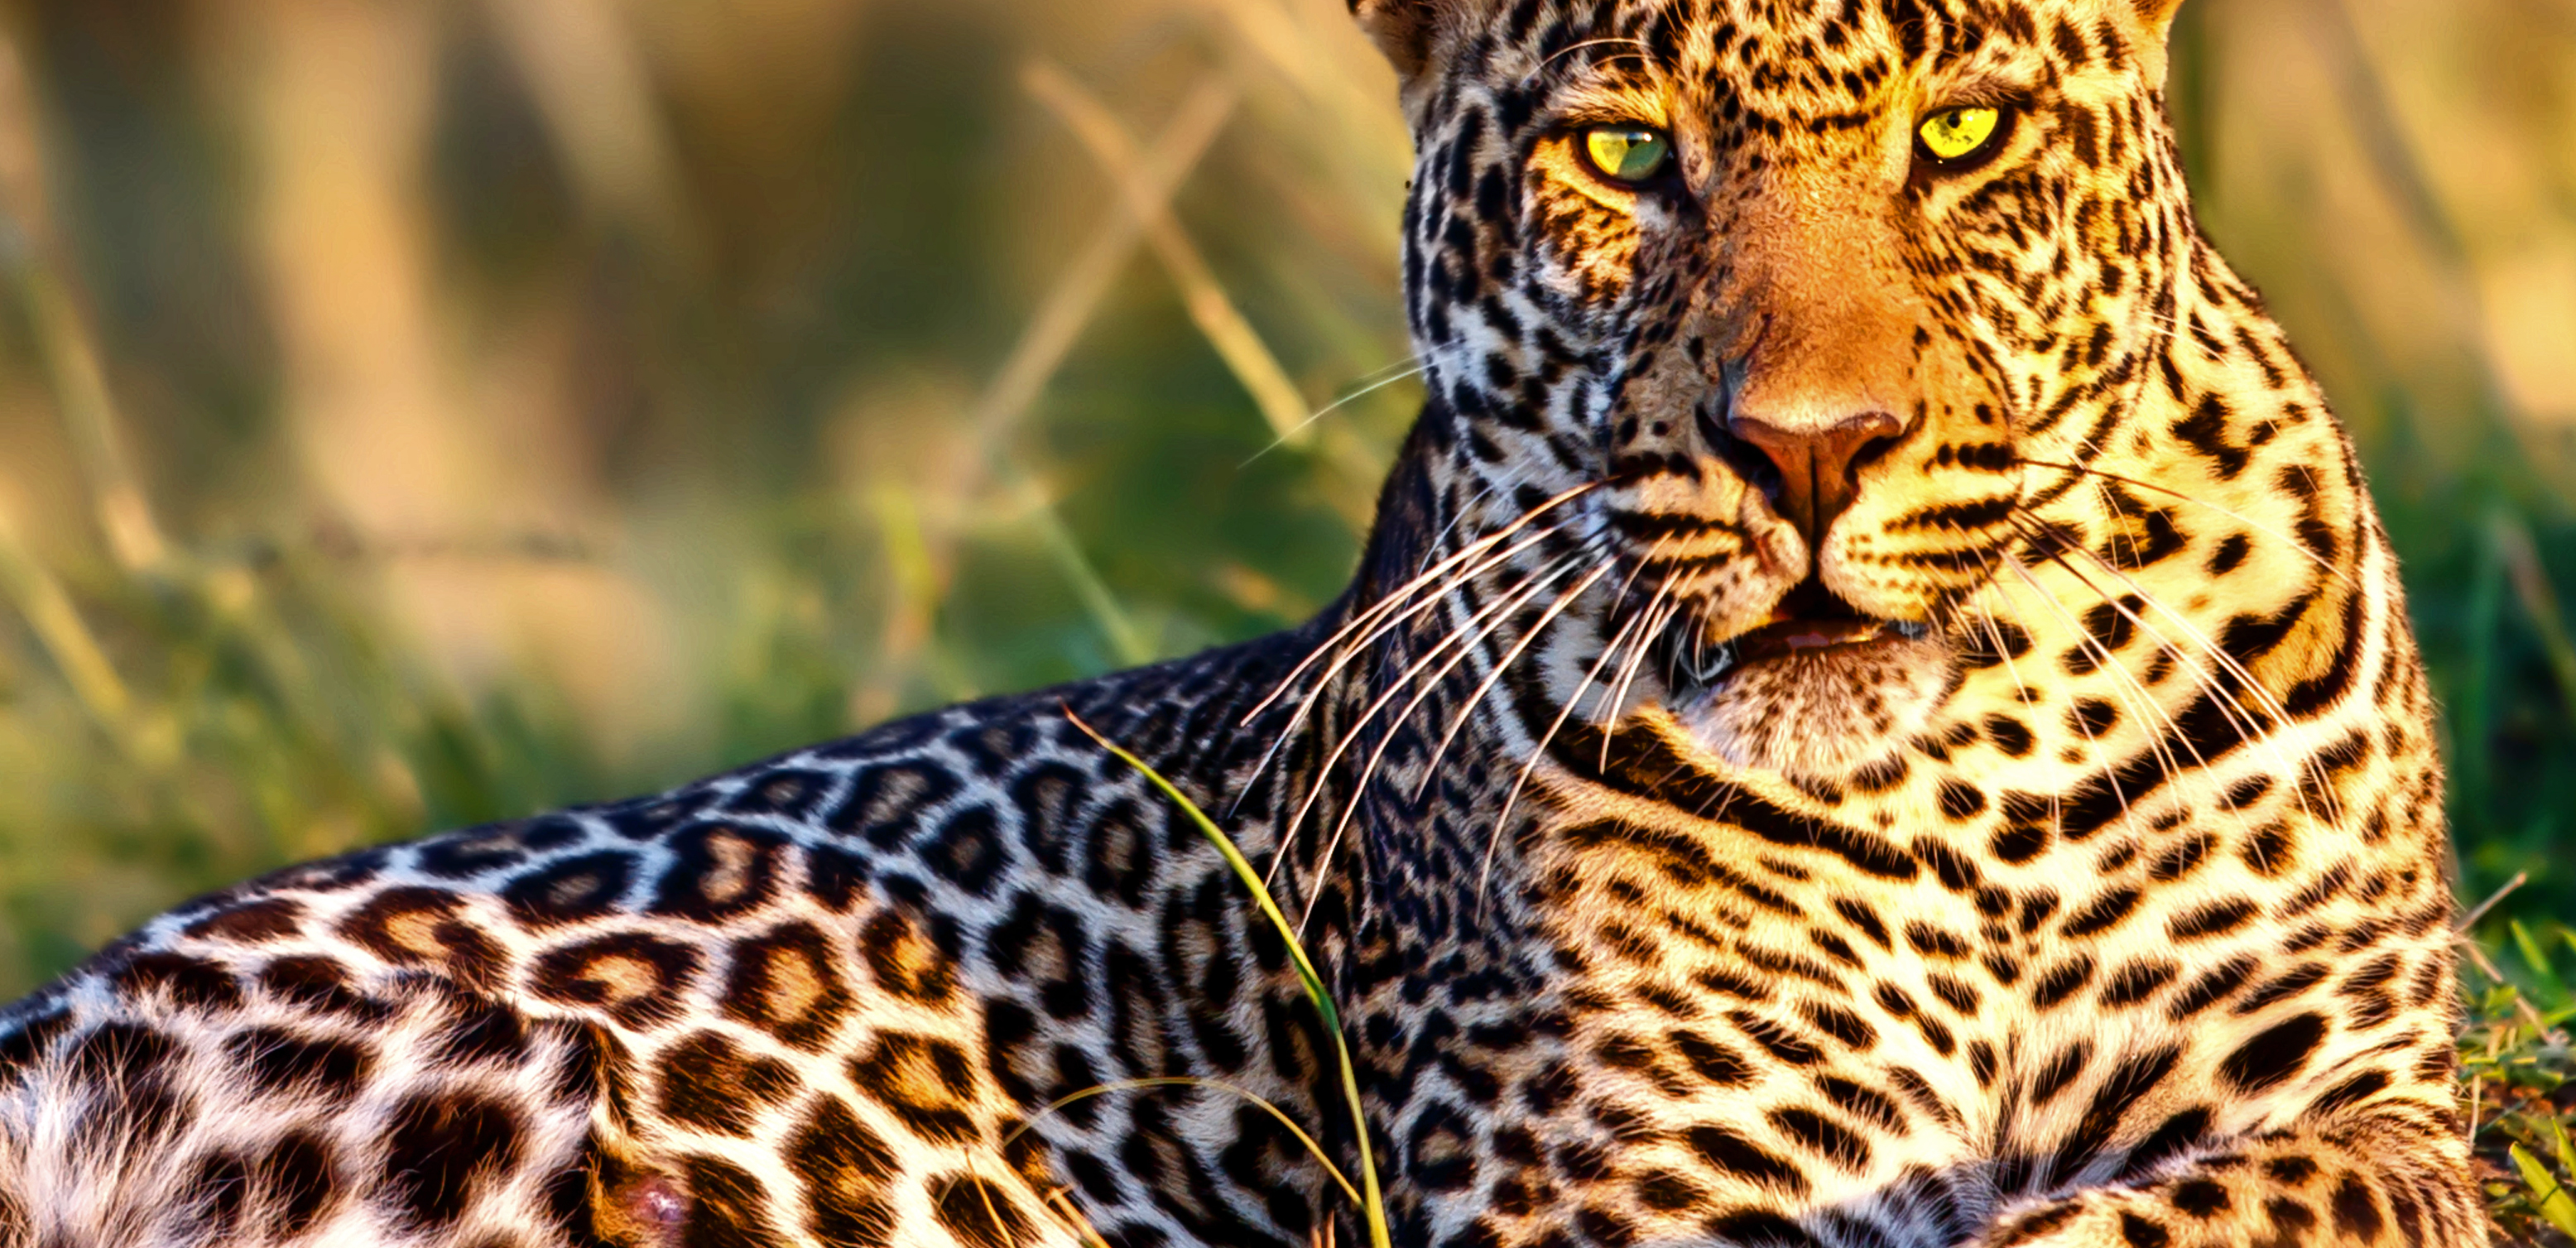 4-Leopard_close-up